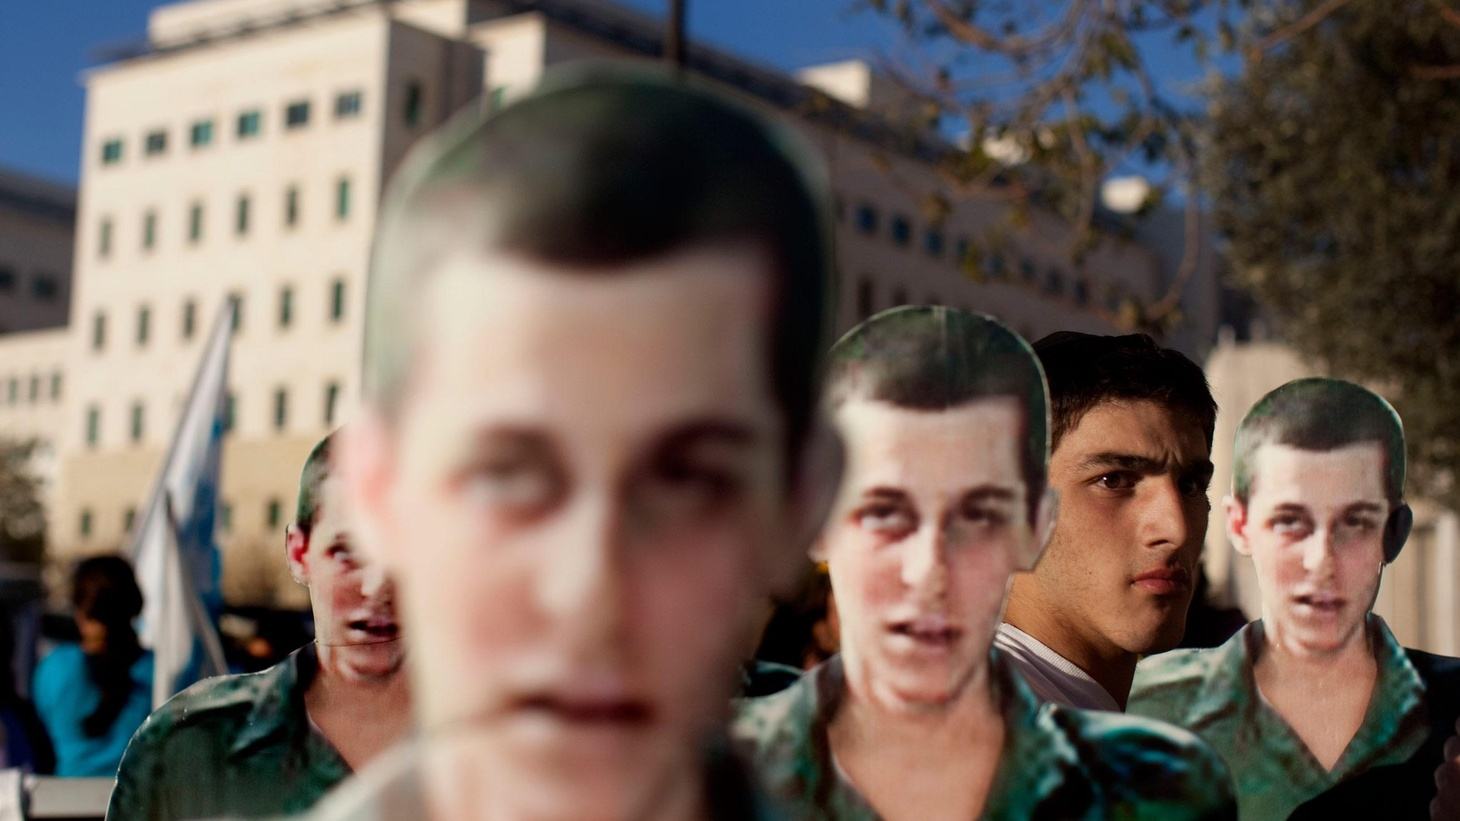 Israel may be on the verge of swapping a thousand Palestinian prisoners for one kidnapped soldier who's become a cause célèbre. On our rebroadcast of today's To the Point, we look at the dilemma faced by right-wing Prime Minister Bibi Netanyahu and the possible consequences, both good and bad. Also, bailing out California. On Reporter's Notebook, will a Rhodes scholar be the next poster child for the NFL?